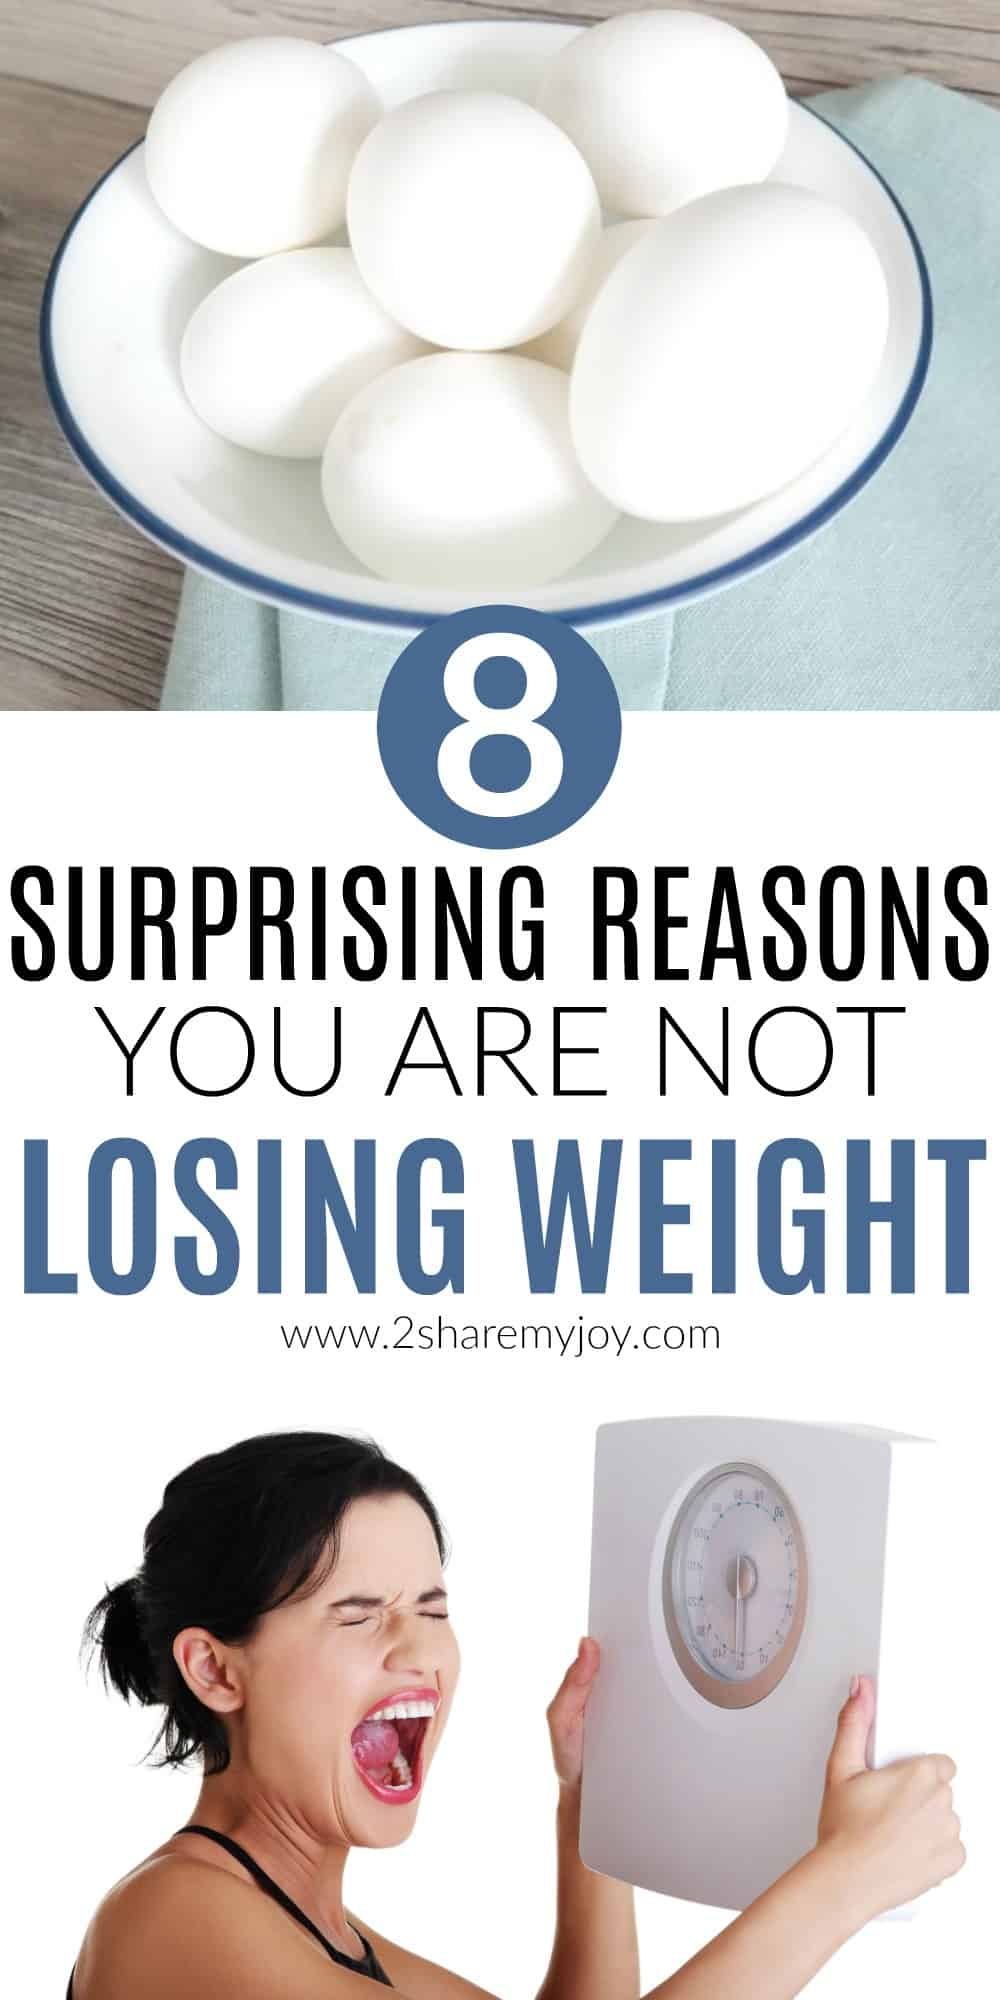 You might be asking yourself why am I not losing weight? Maybe you've tried the keto diet or the low carb diet but with no success? Click through and read 8 surprising reasons you are still not losing weight. Get motivated, get better health, and start your weightloss. #weightlossmistakes #notlosingweight #weightloss